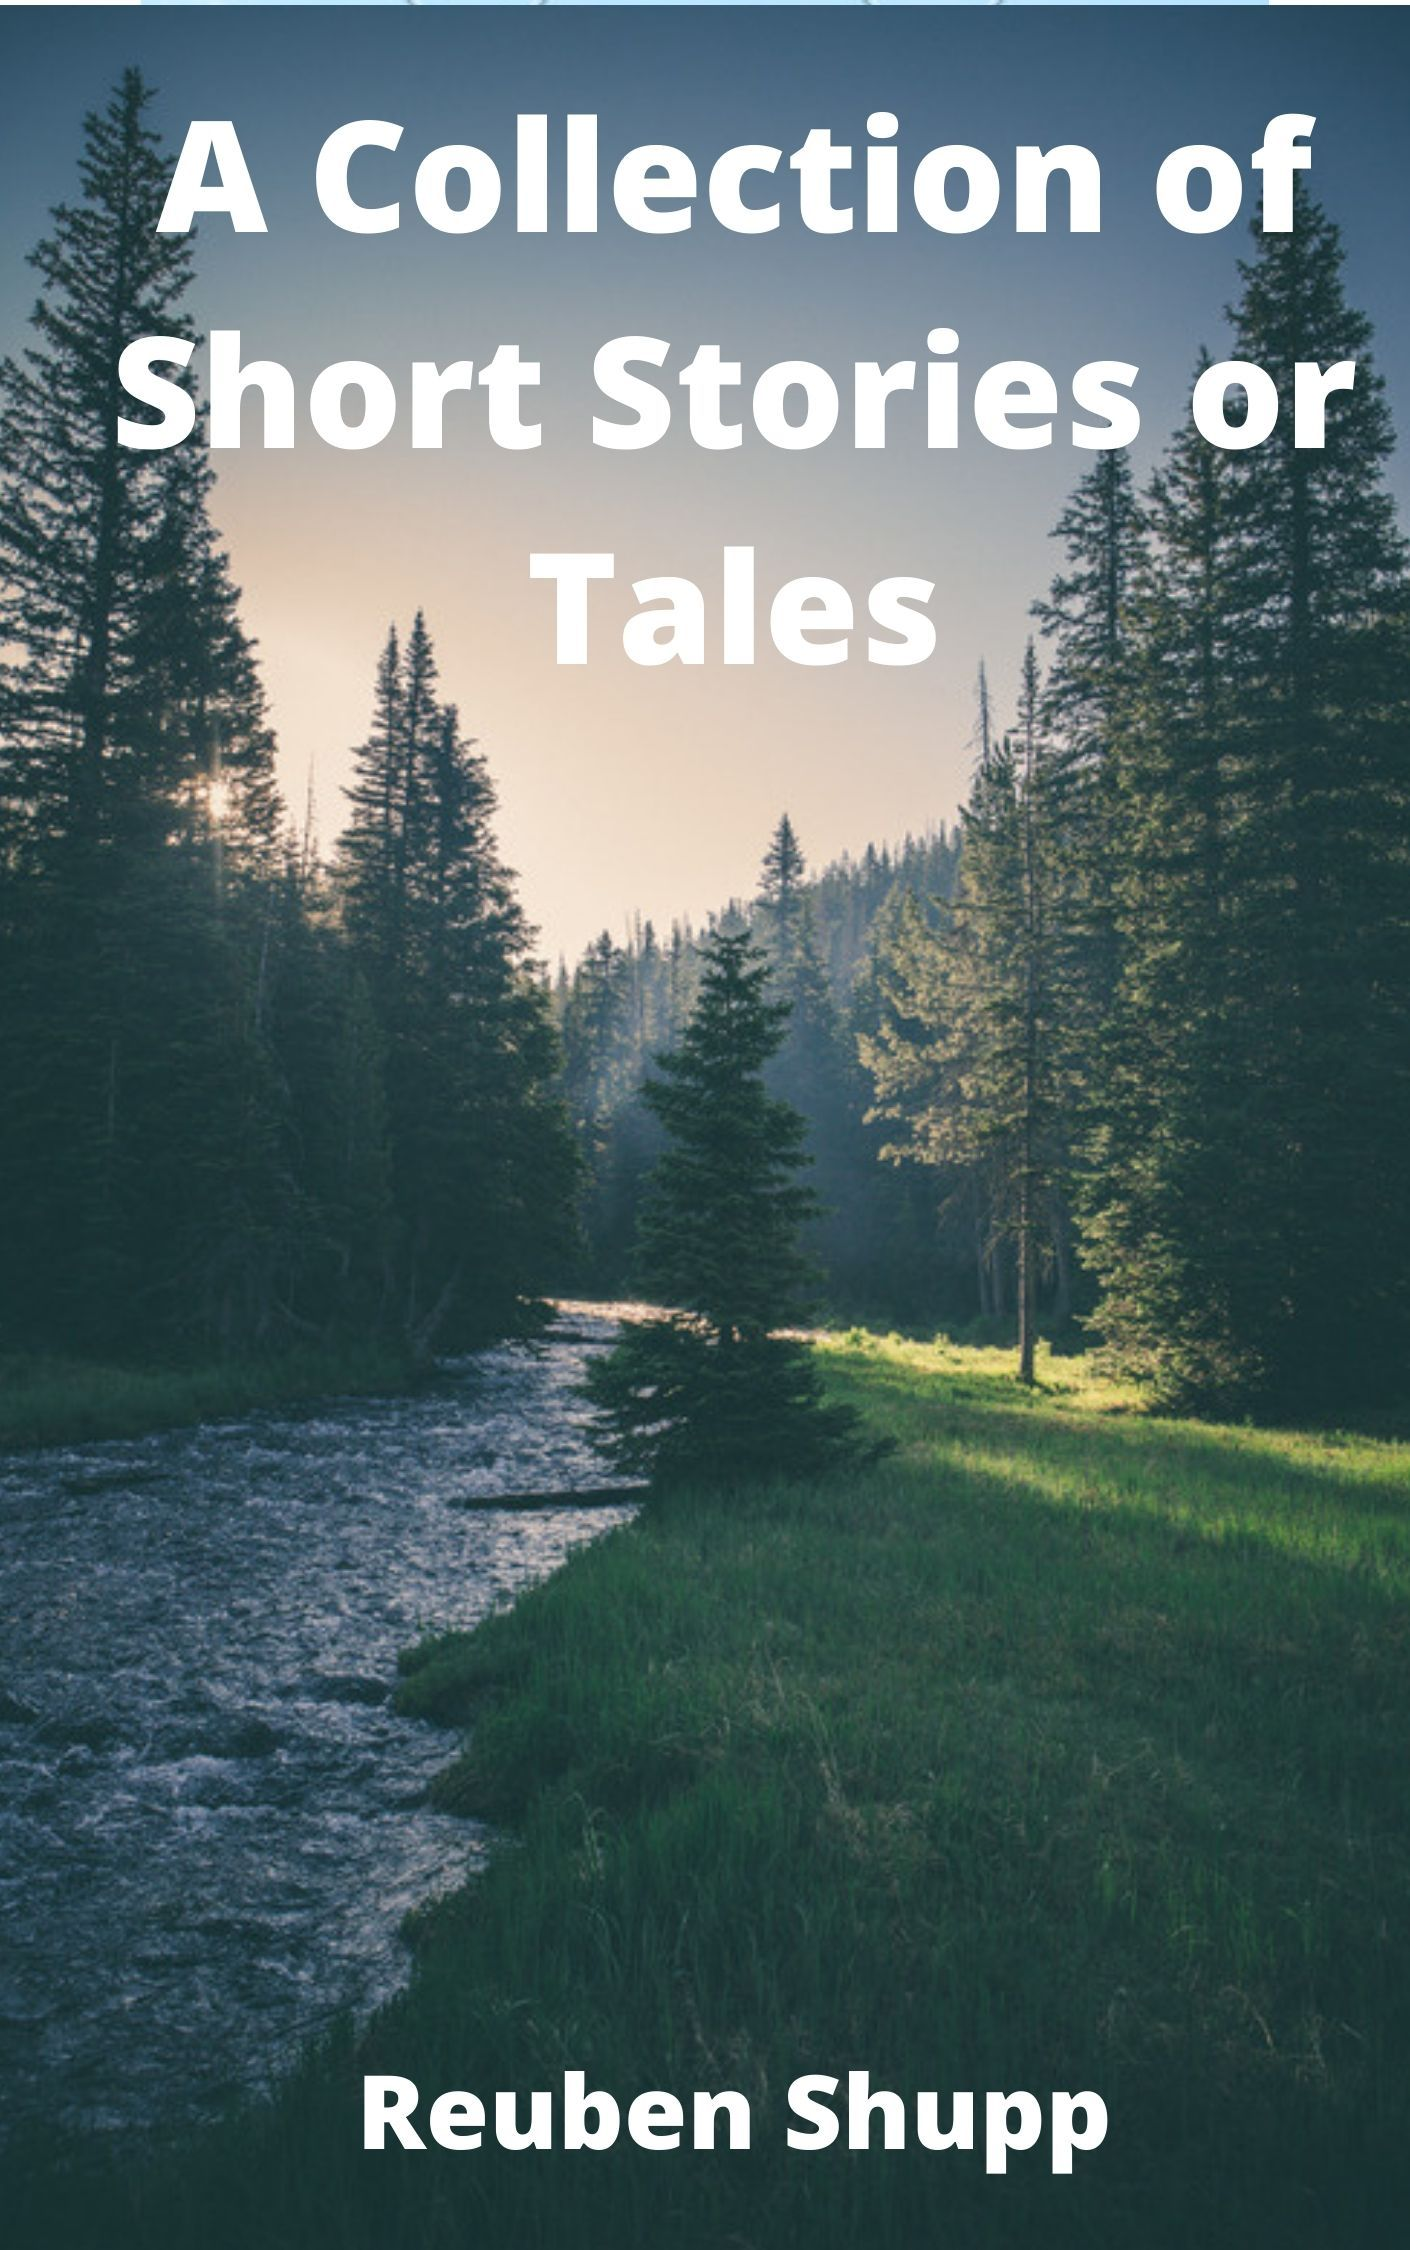 A Collection of Short Stories or Tales's Book Image